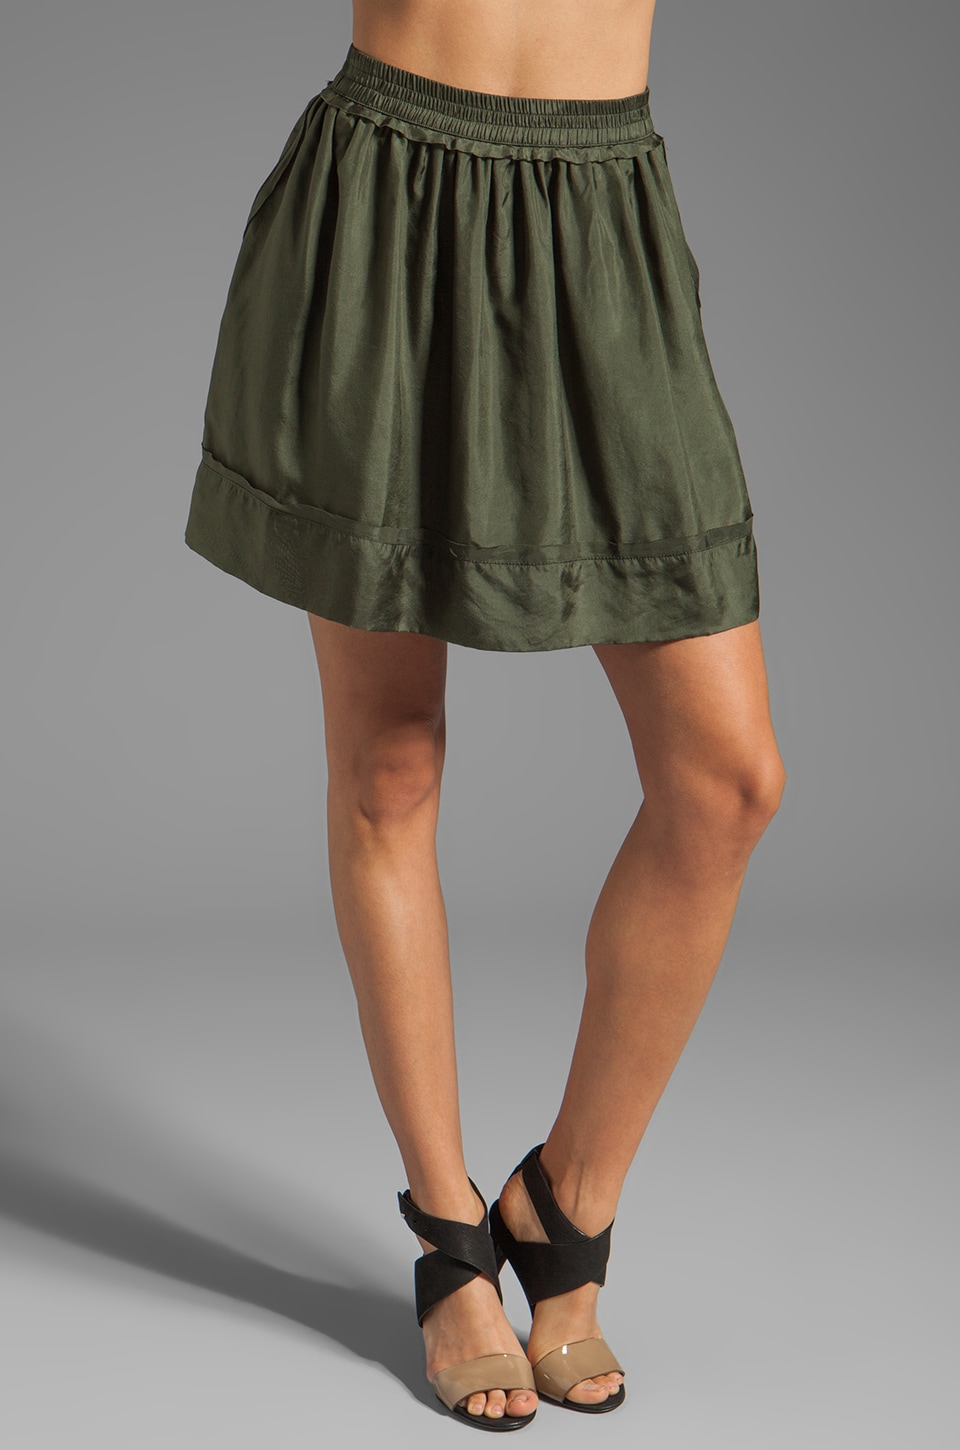 Graham & Spencer Skirt in Army